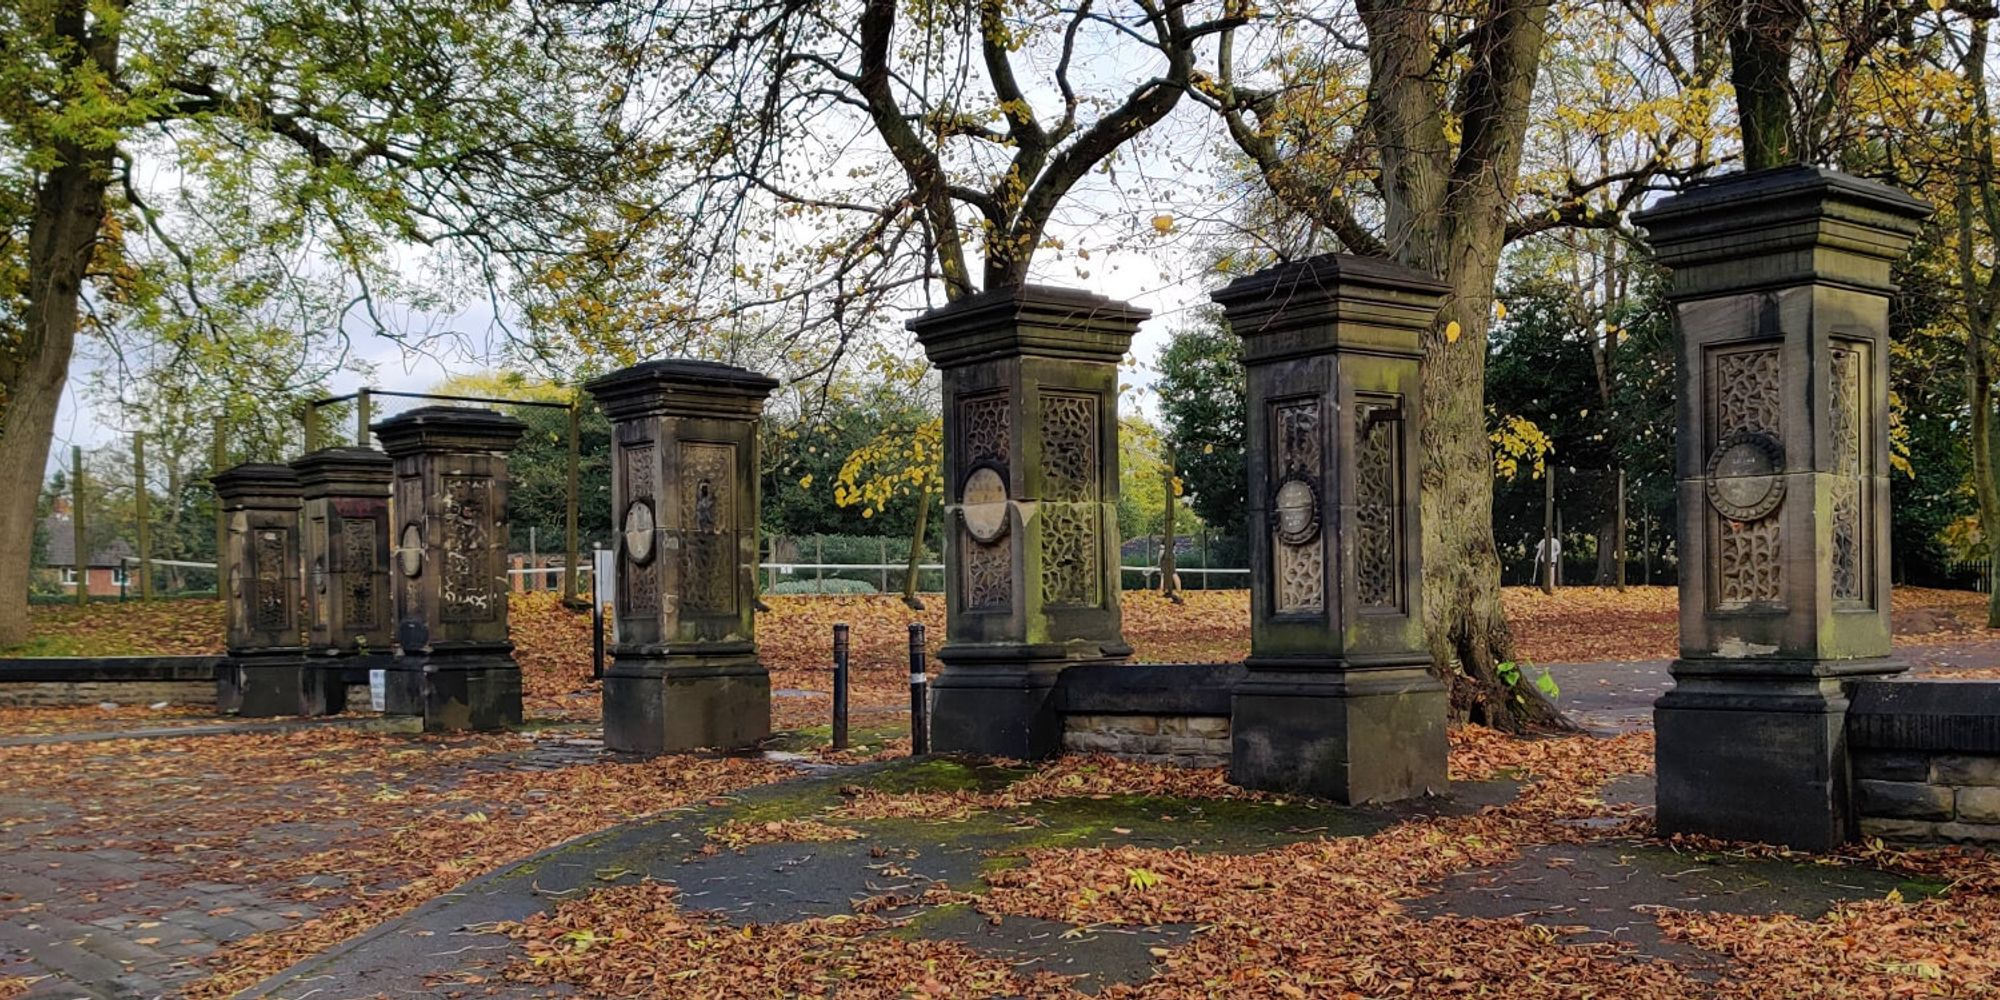 Large old stone pillars marking the entrance to Burley Park